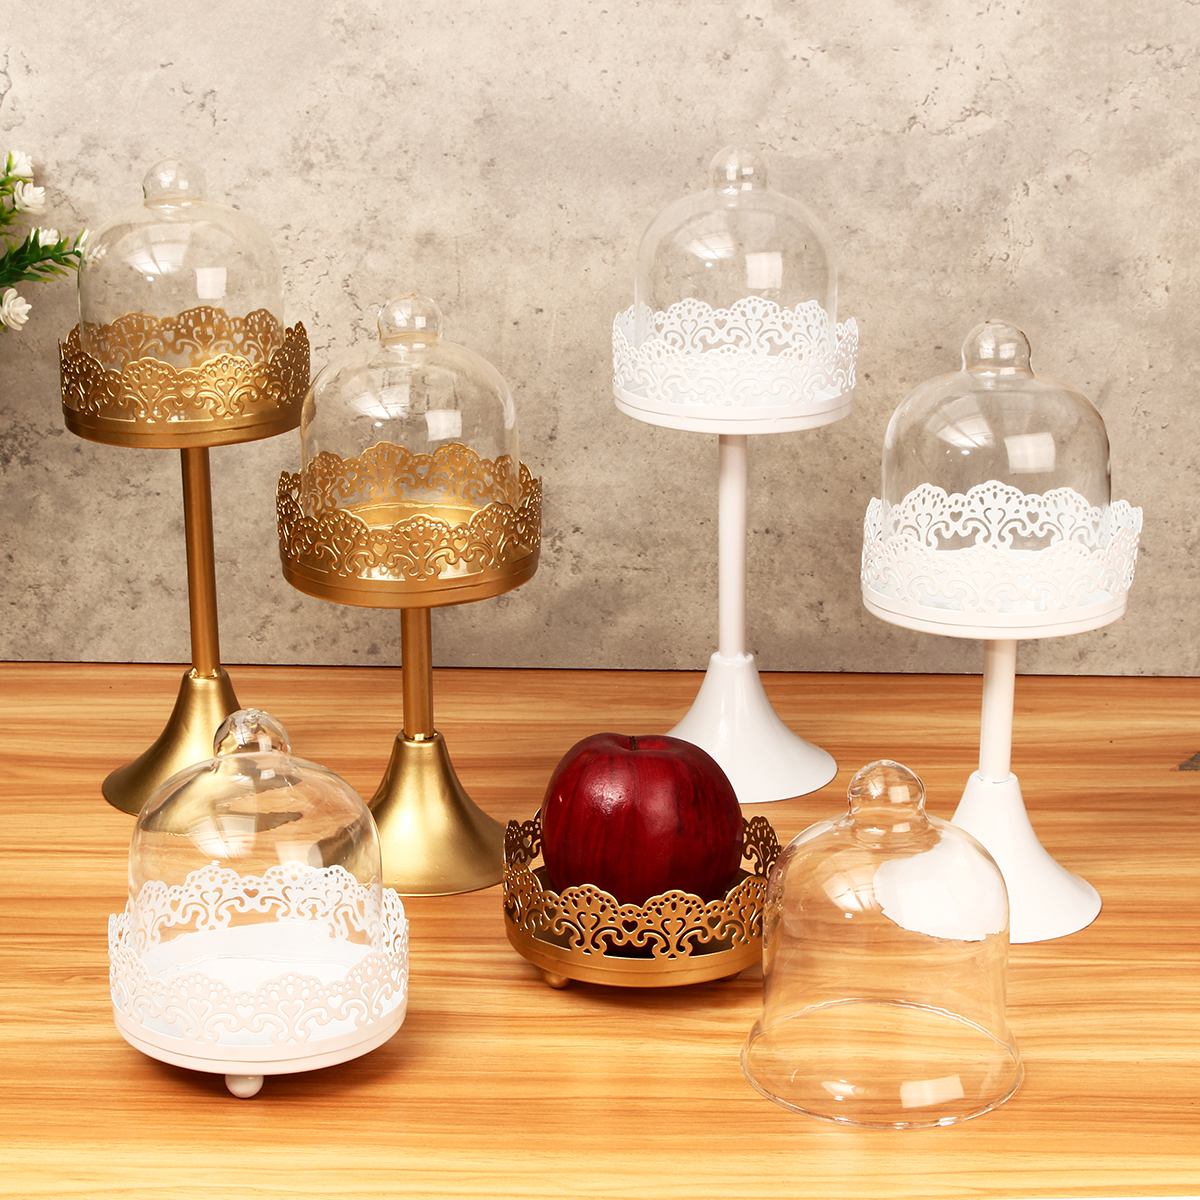 White/Gold Metal Cake Holder Cupcake Stand Dessert Platter Display Wedding Party Decorations